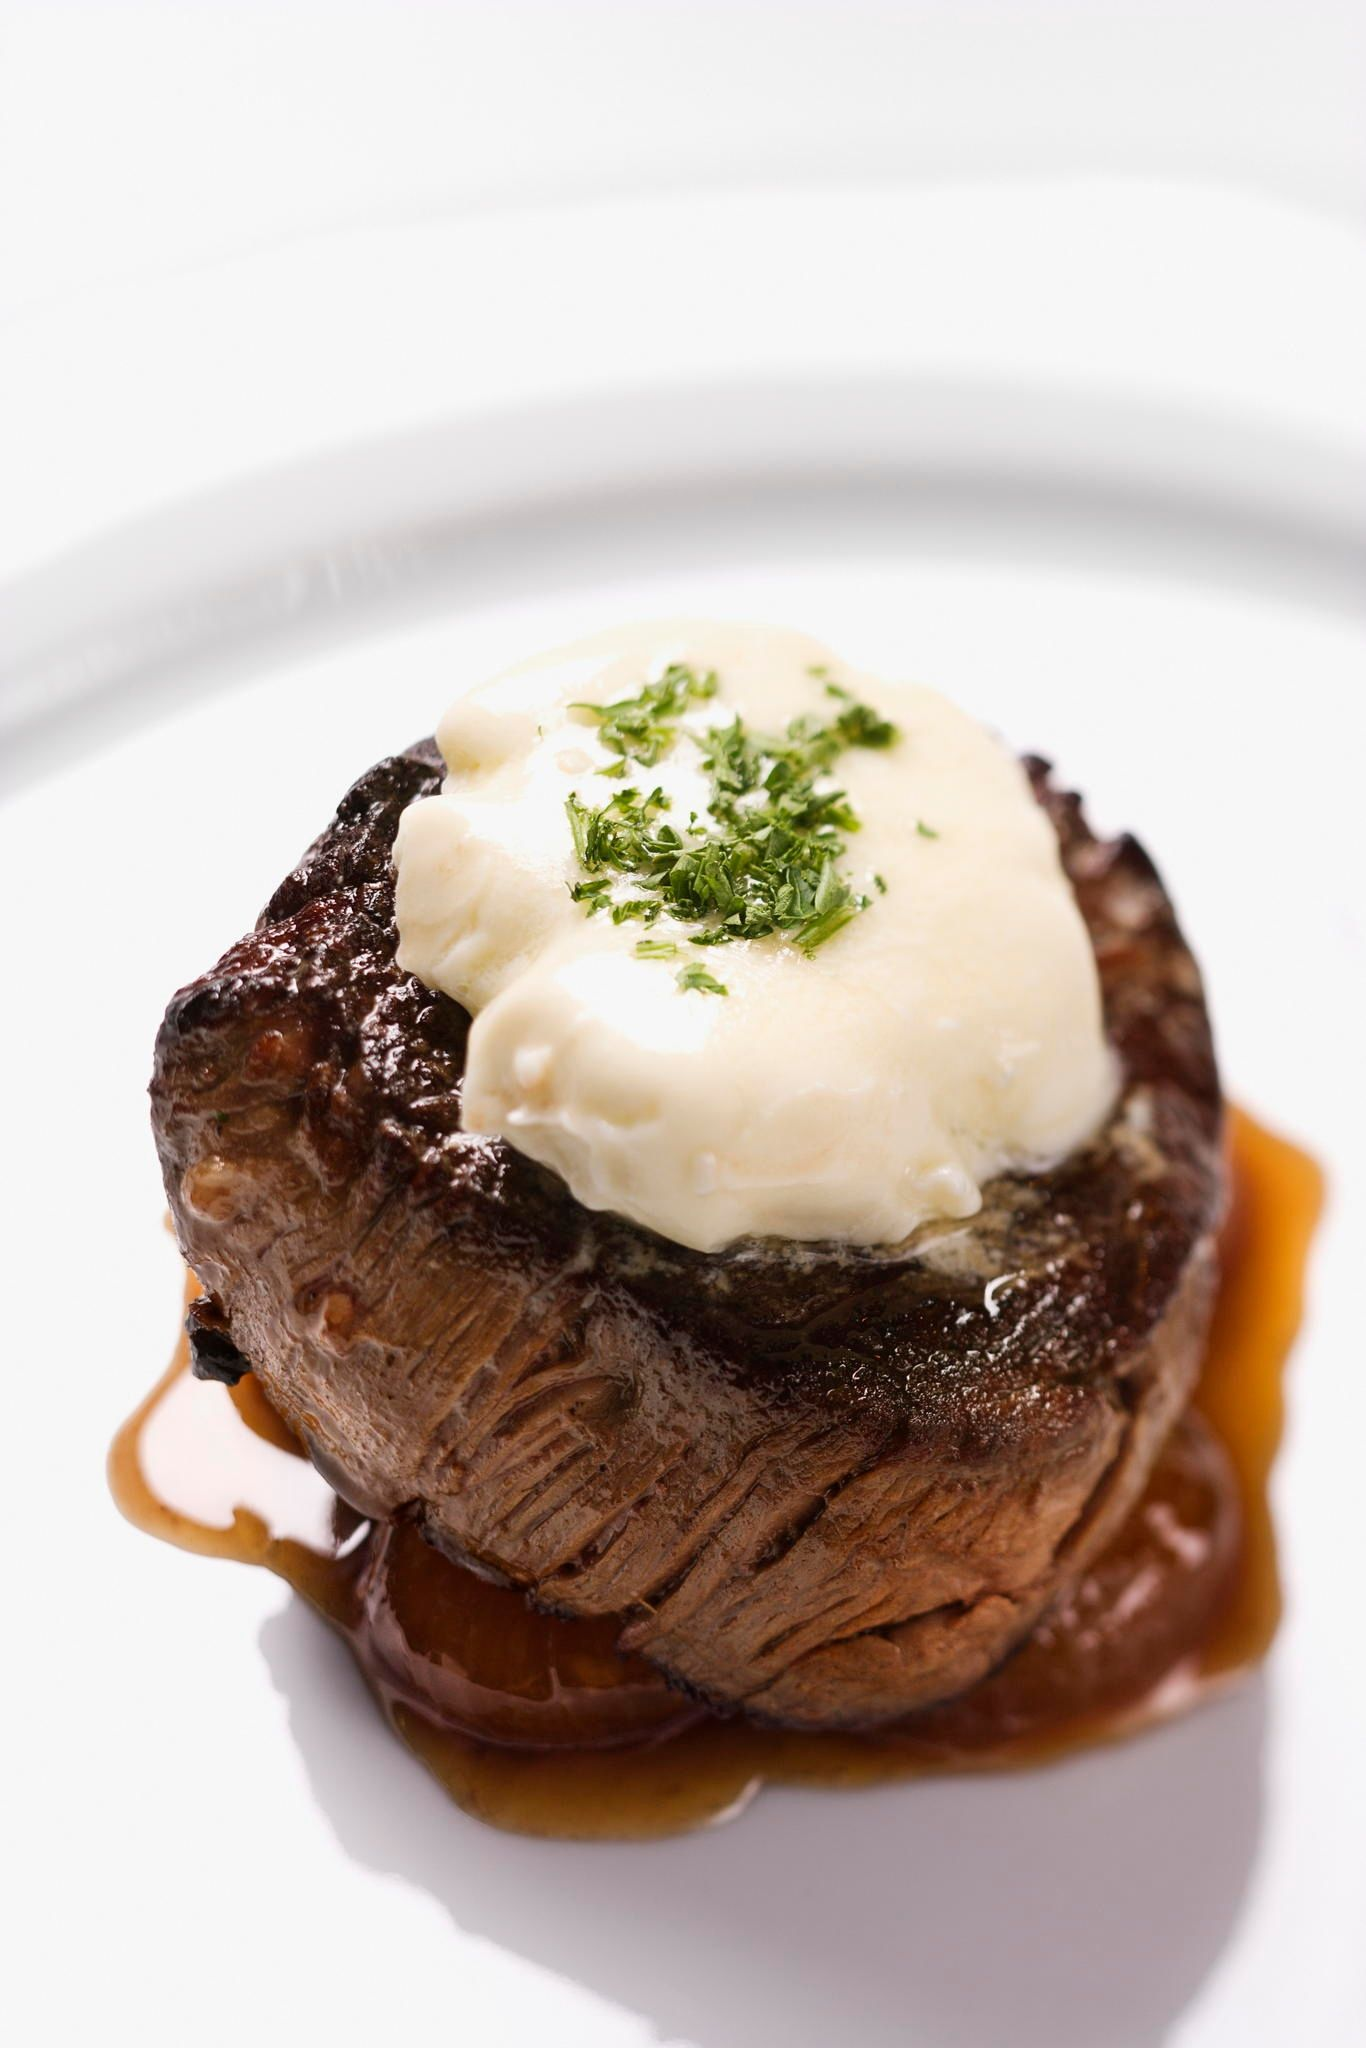 Beef Dinner Entree Beef Filet Dinner Entree With Garnish And Brown Sauce Displayed On A White Dinner Plate Vertical Beef Dinner Dinner Entrees Beef Recipes